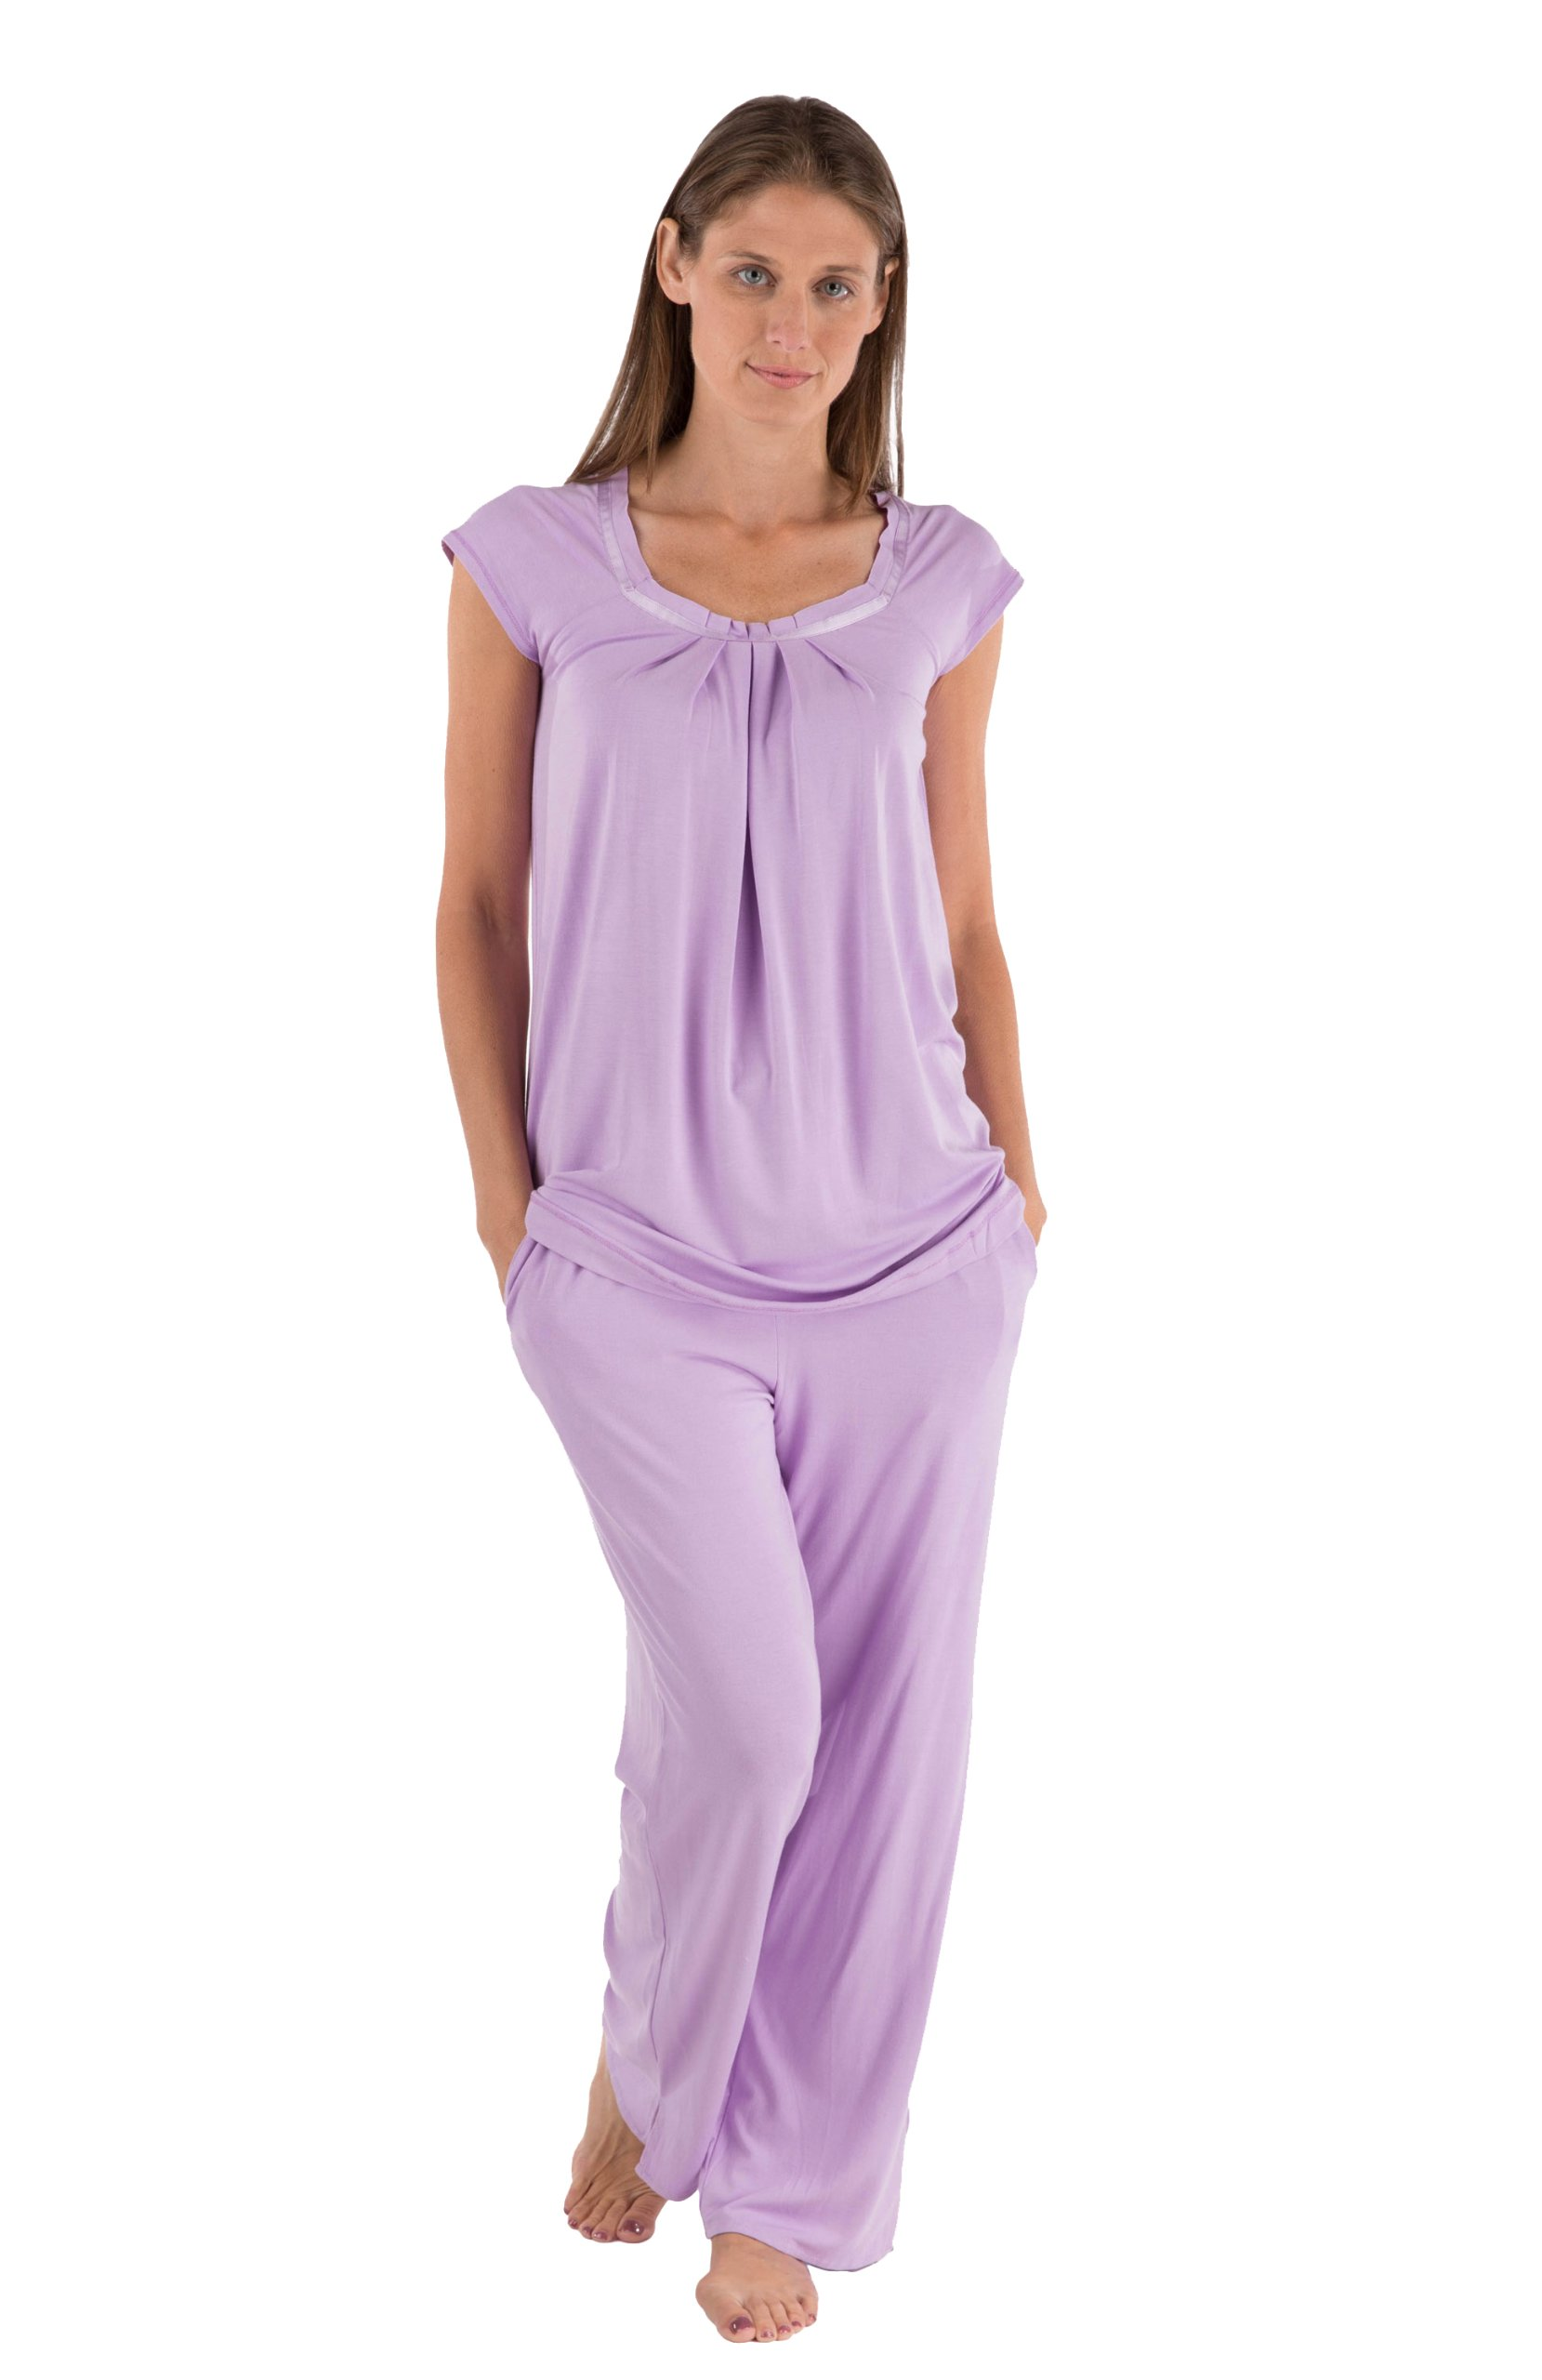 Women s Pajamas in Bamboo Viscose (Bamboo Bliss) Cozy Sleepwear Set by  Texere product image 611b3ade7